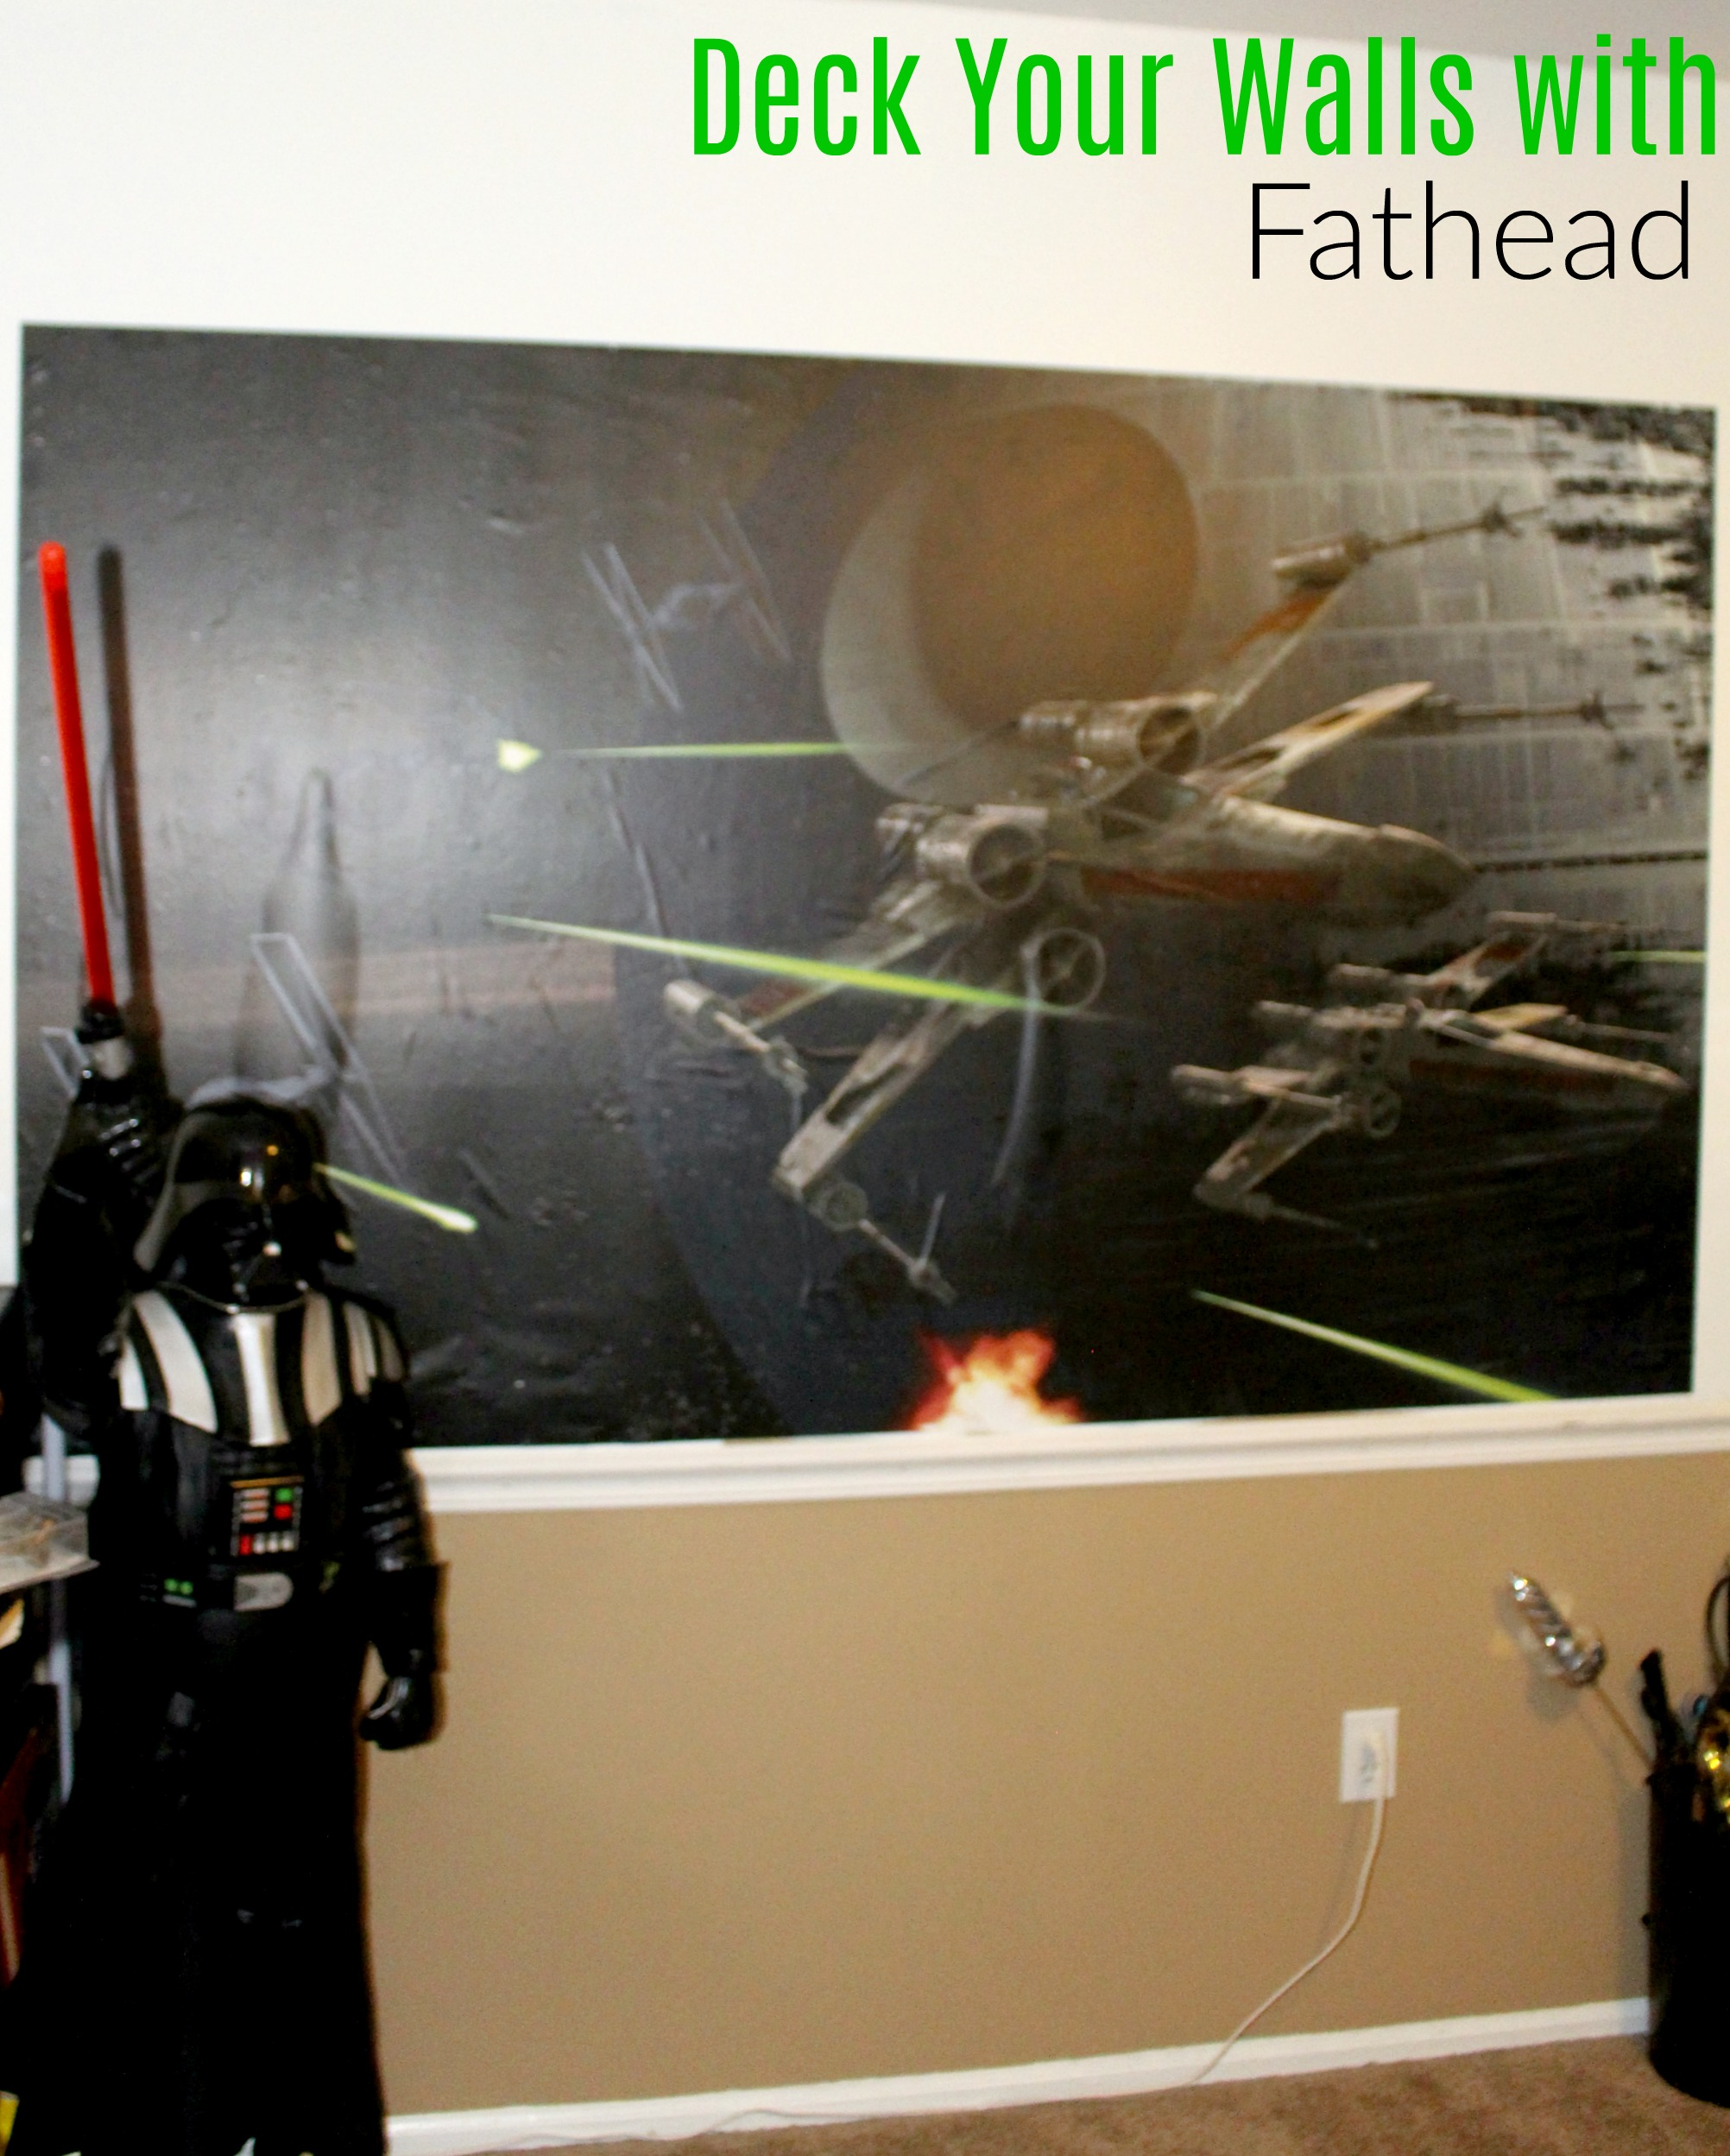 Deck Your Walls with Fathead